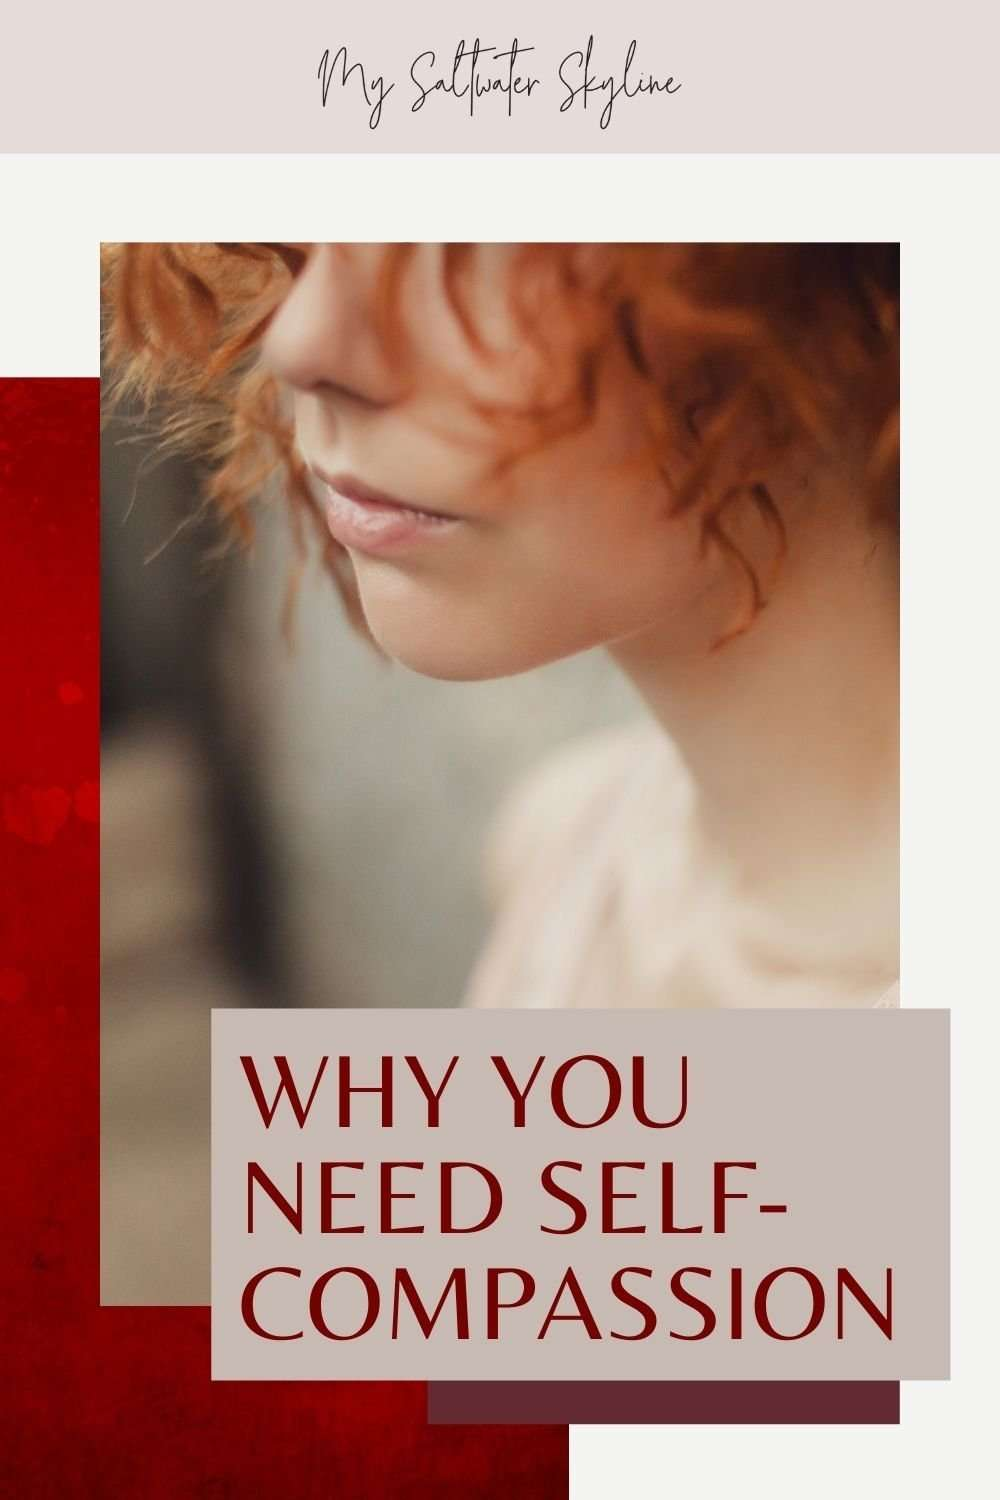 close-up-bottom-half-of-womans-face-sad-expression-curly-red-hair-self-compassion-blog-post-pin